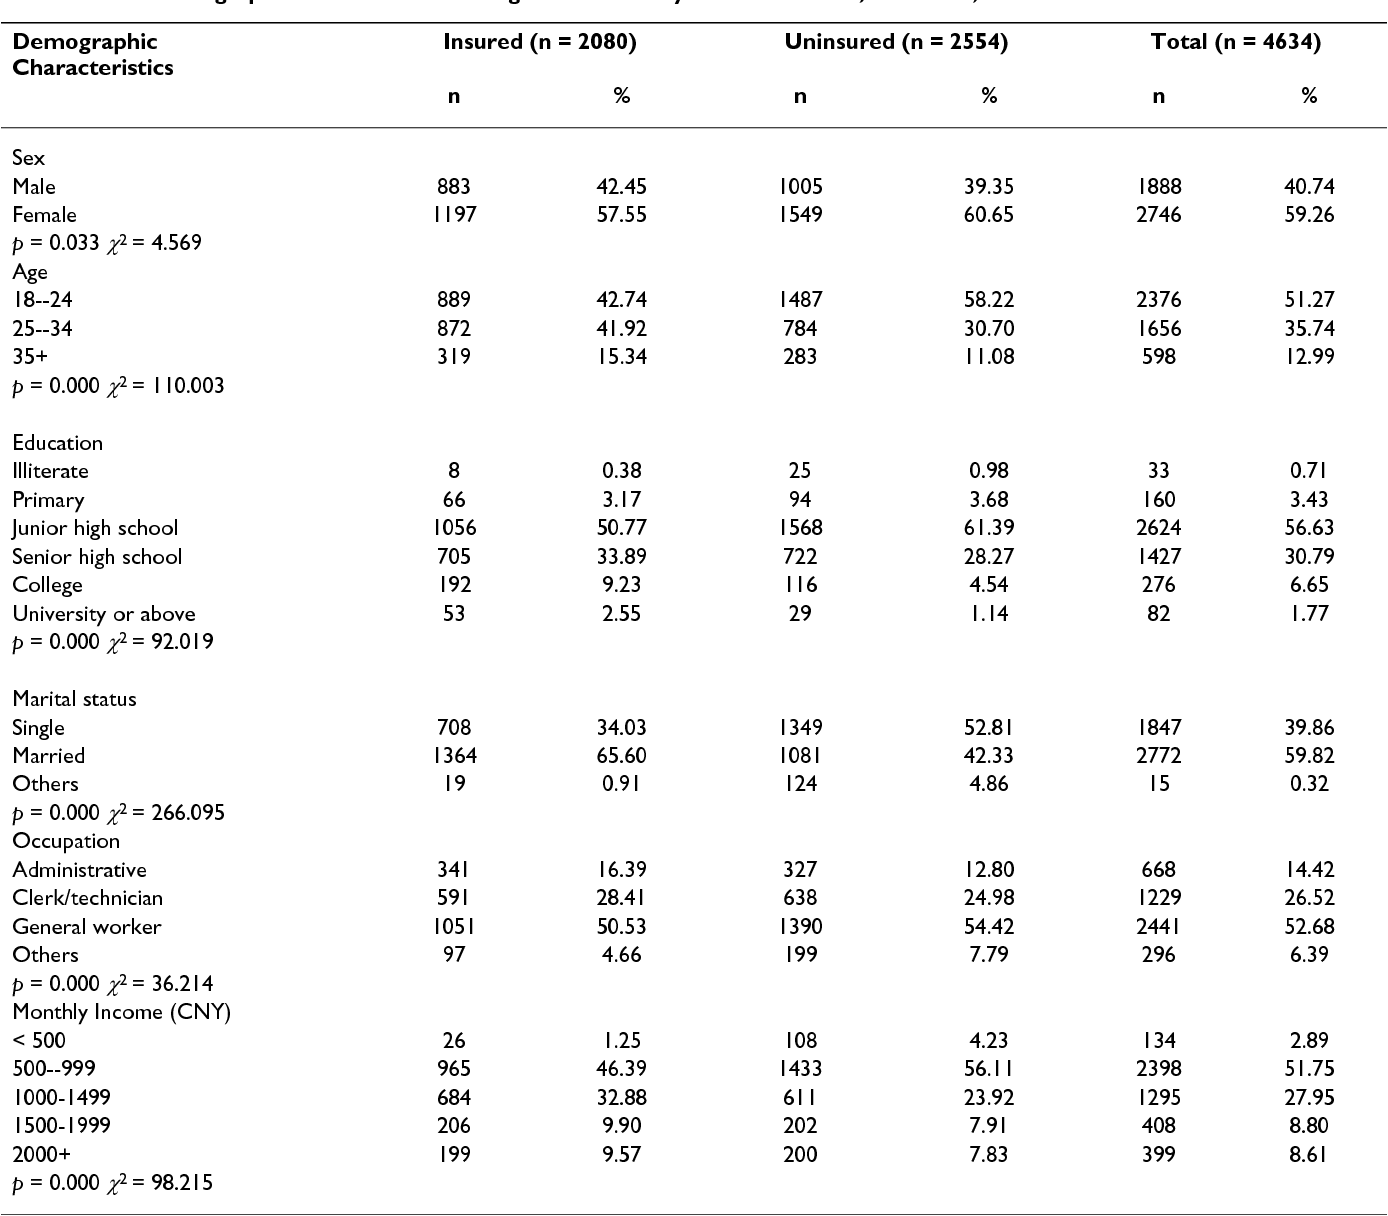 Table 1: Socio-demographic characteristics of migrant workers by insurance status, Shenzhen, China